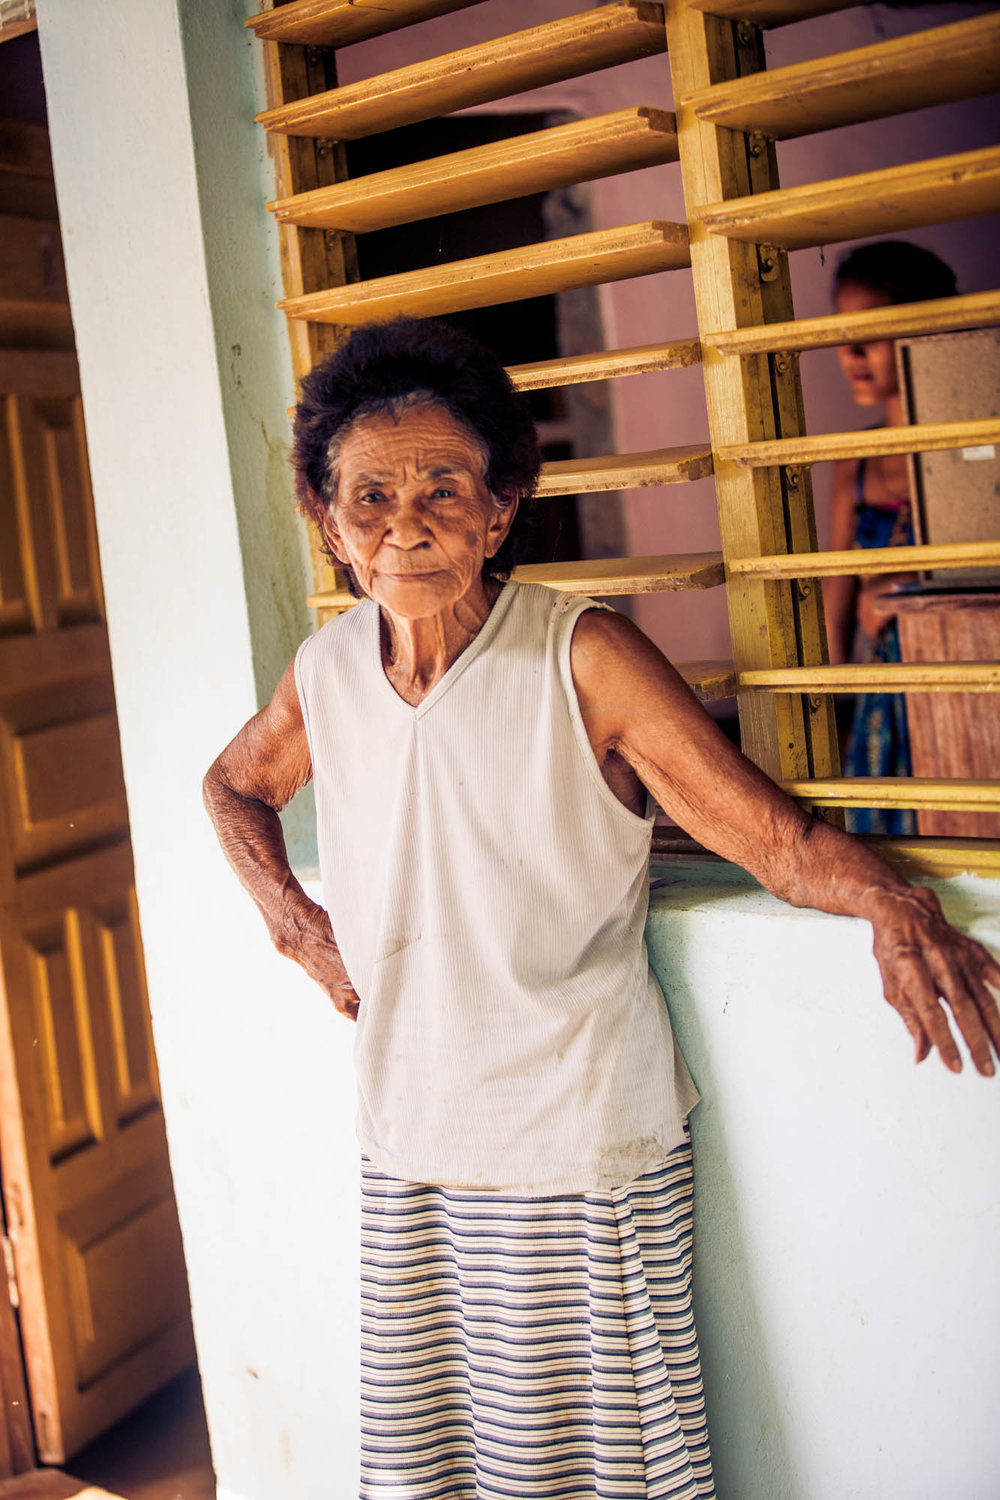 LA ABUELA    Grandma Fuentes, the matriarch of the farm, had an exceptional calm about her presence. She welcomed us and exchanged several smiles as we enjoyed fresh fruta bomba (papaya) and coconut at the family's home. Wisdom emanated from her.